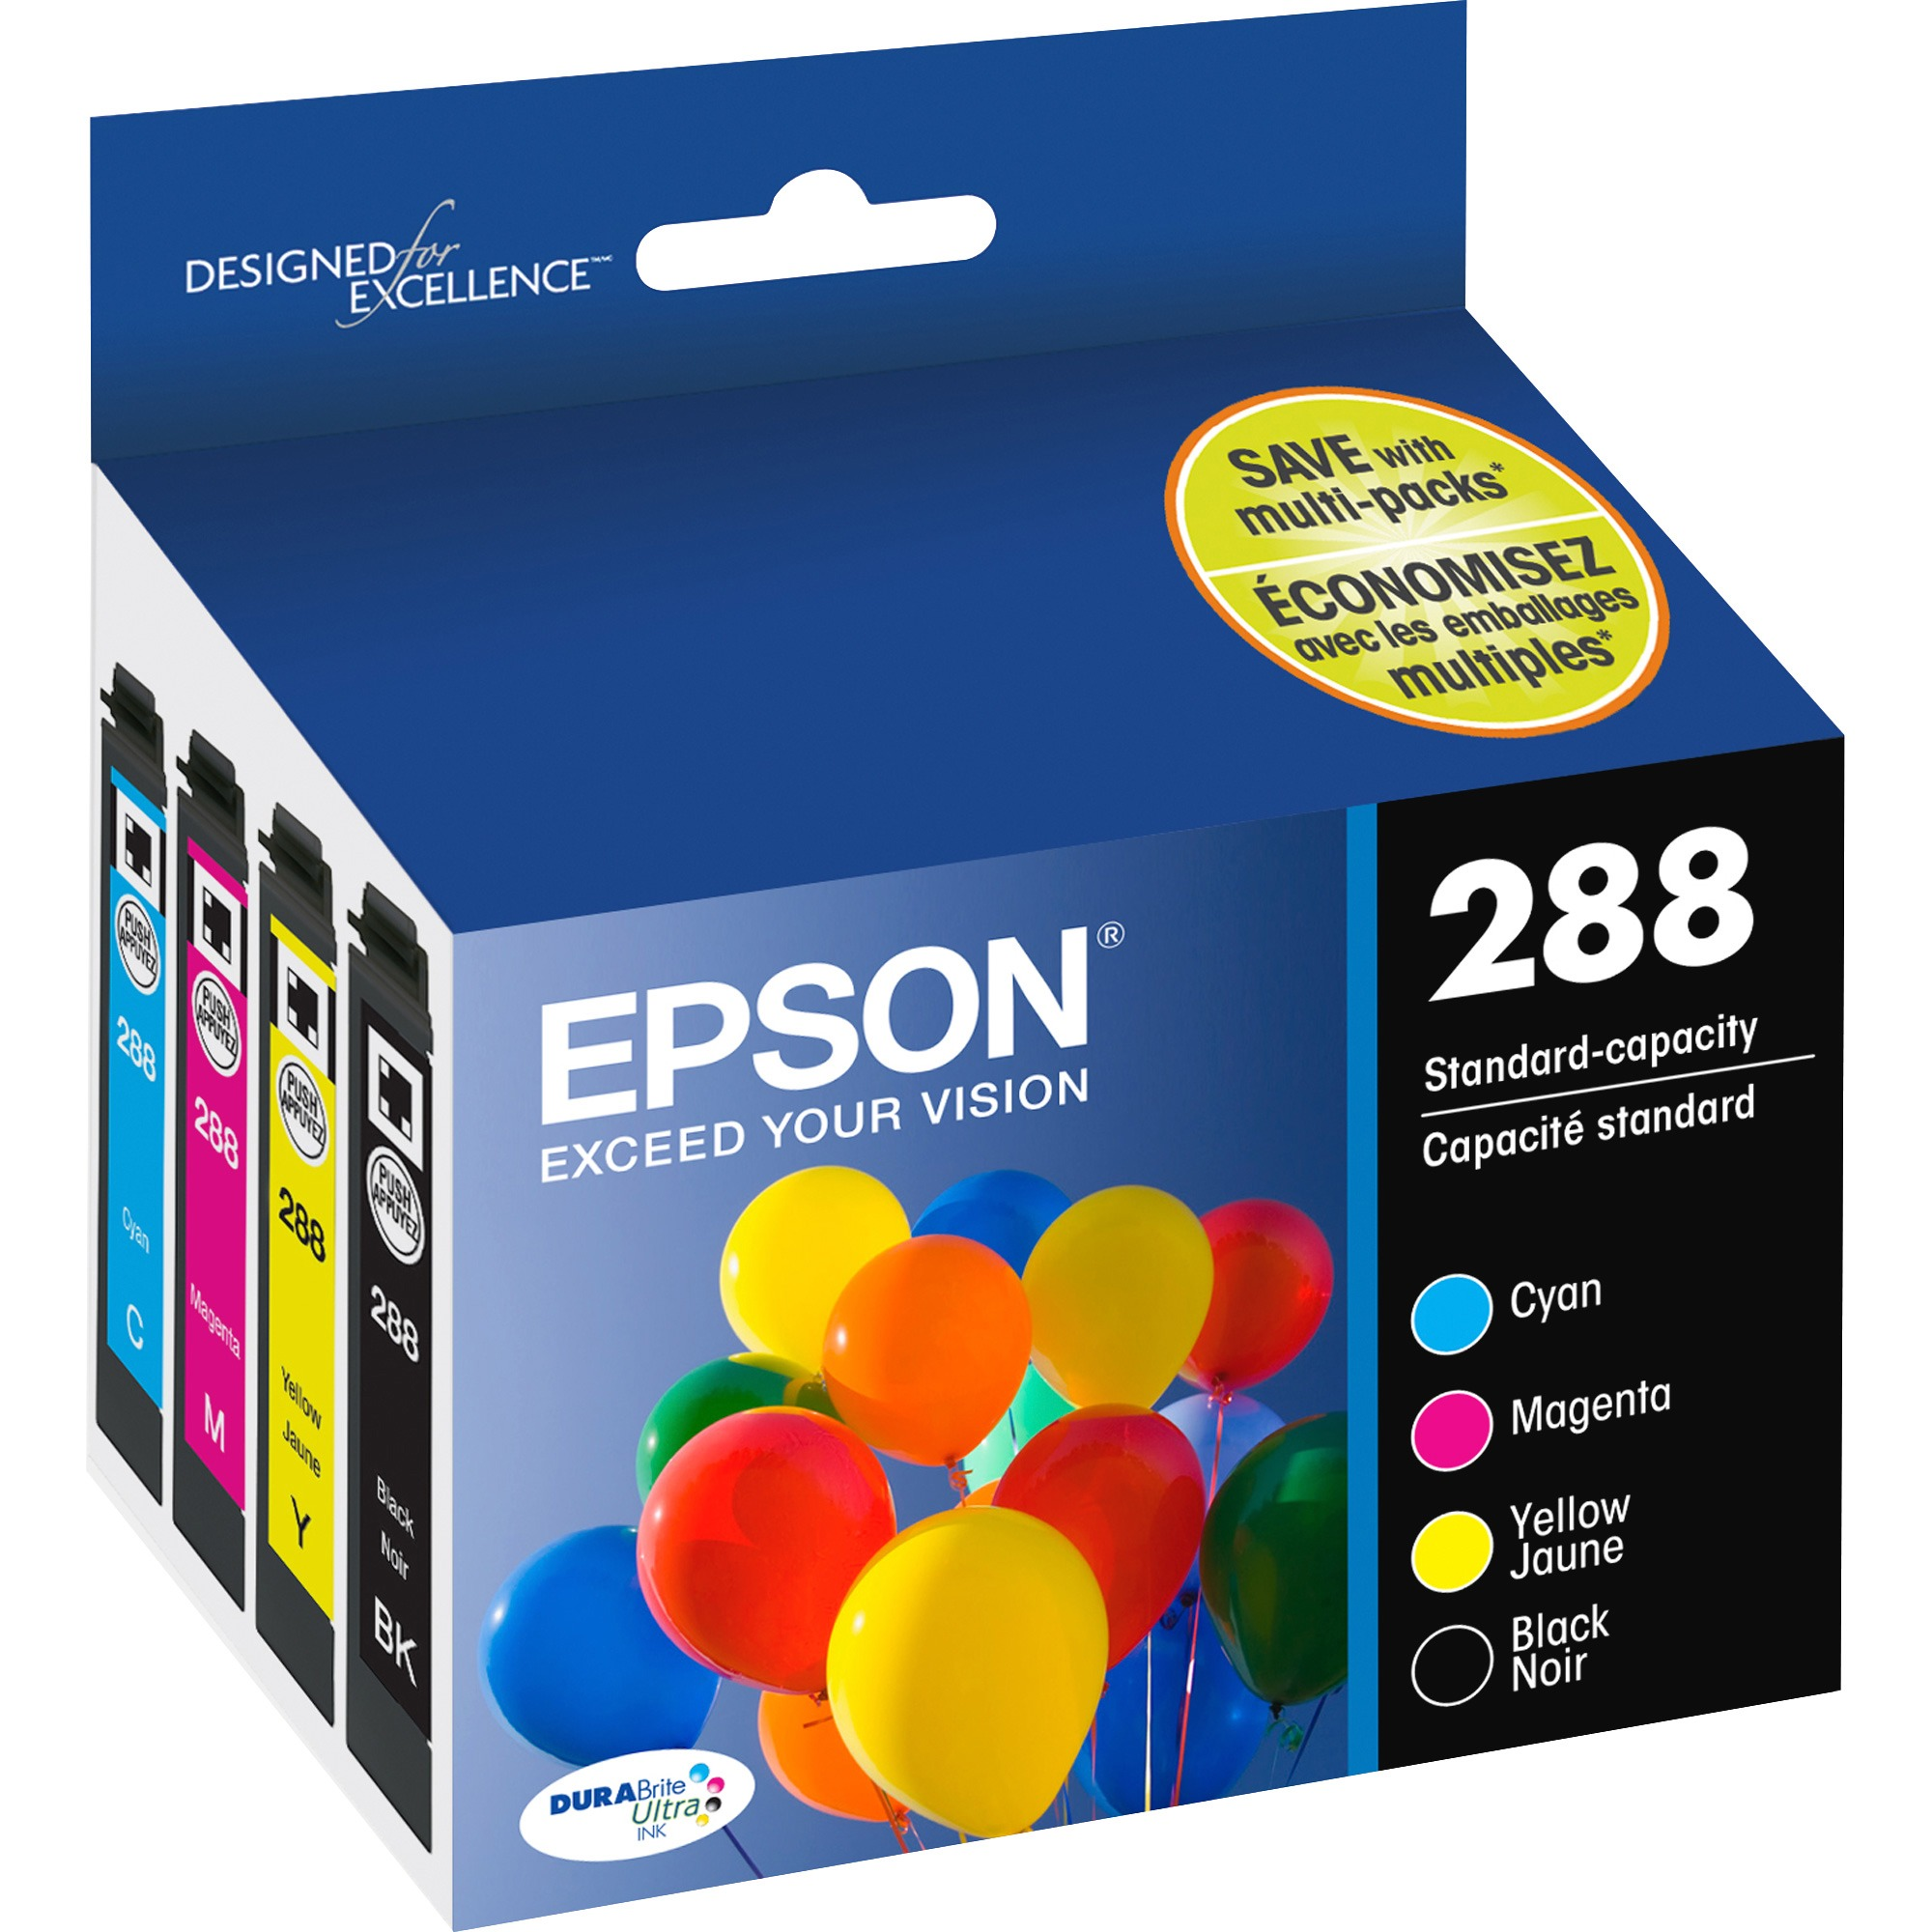 Epson 288 DURABrite Ultra Original Ink Cartridge - Black, Cyan, Magenta, Yellow